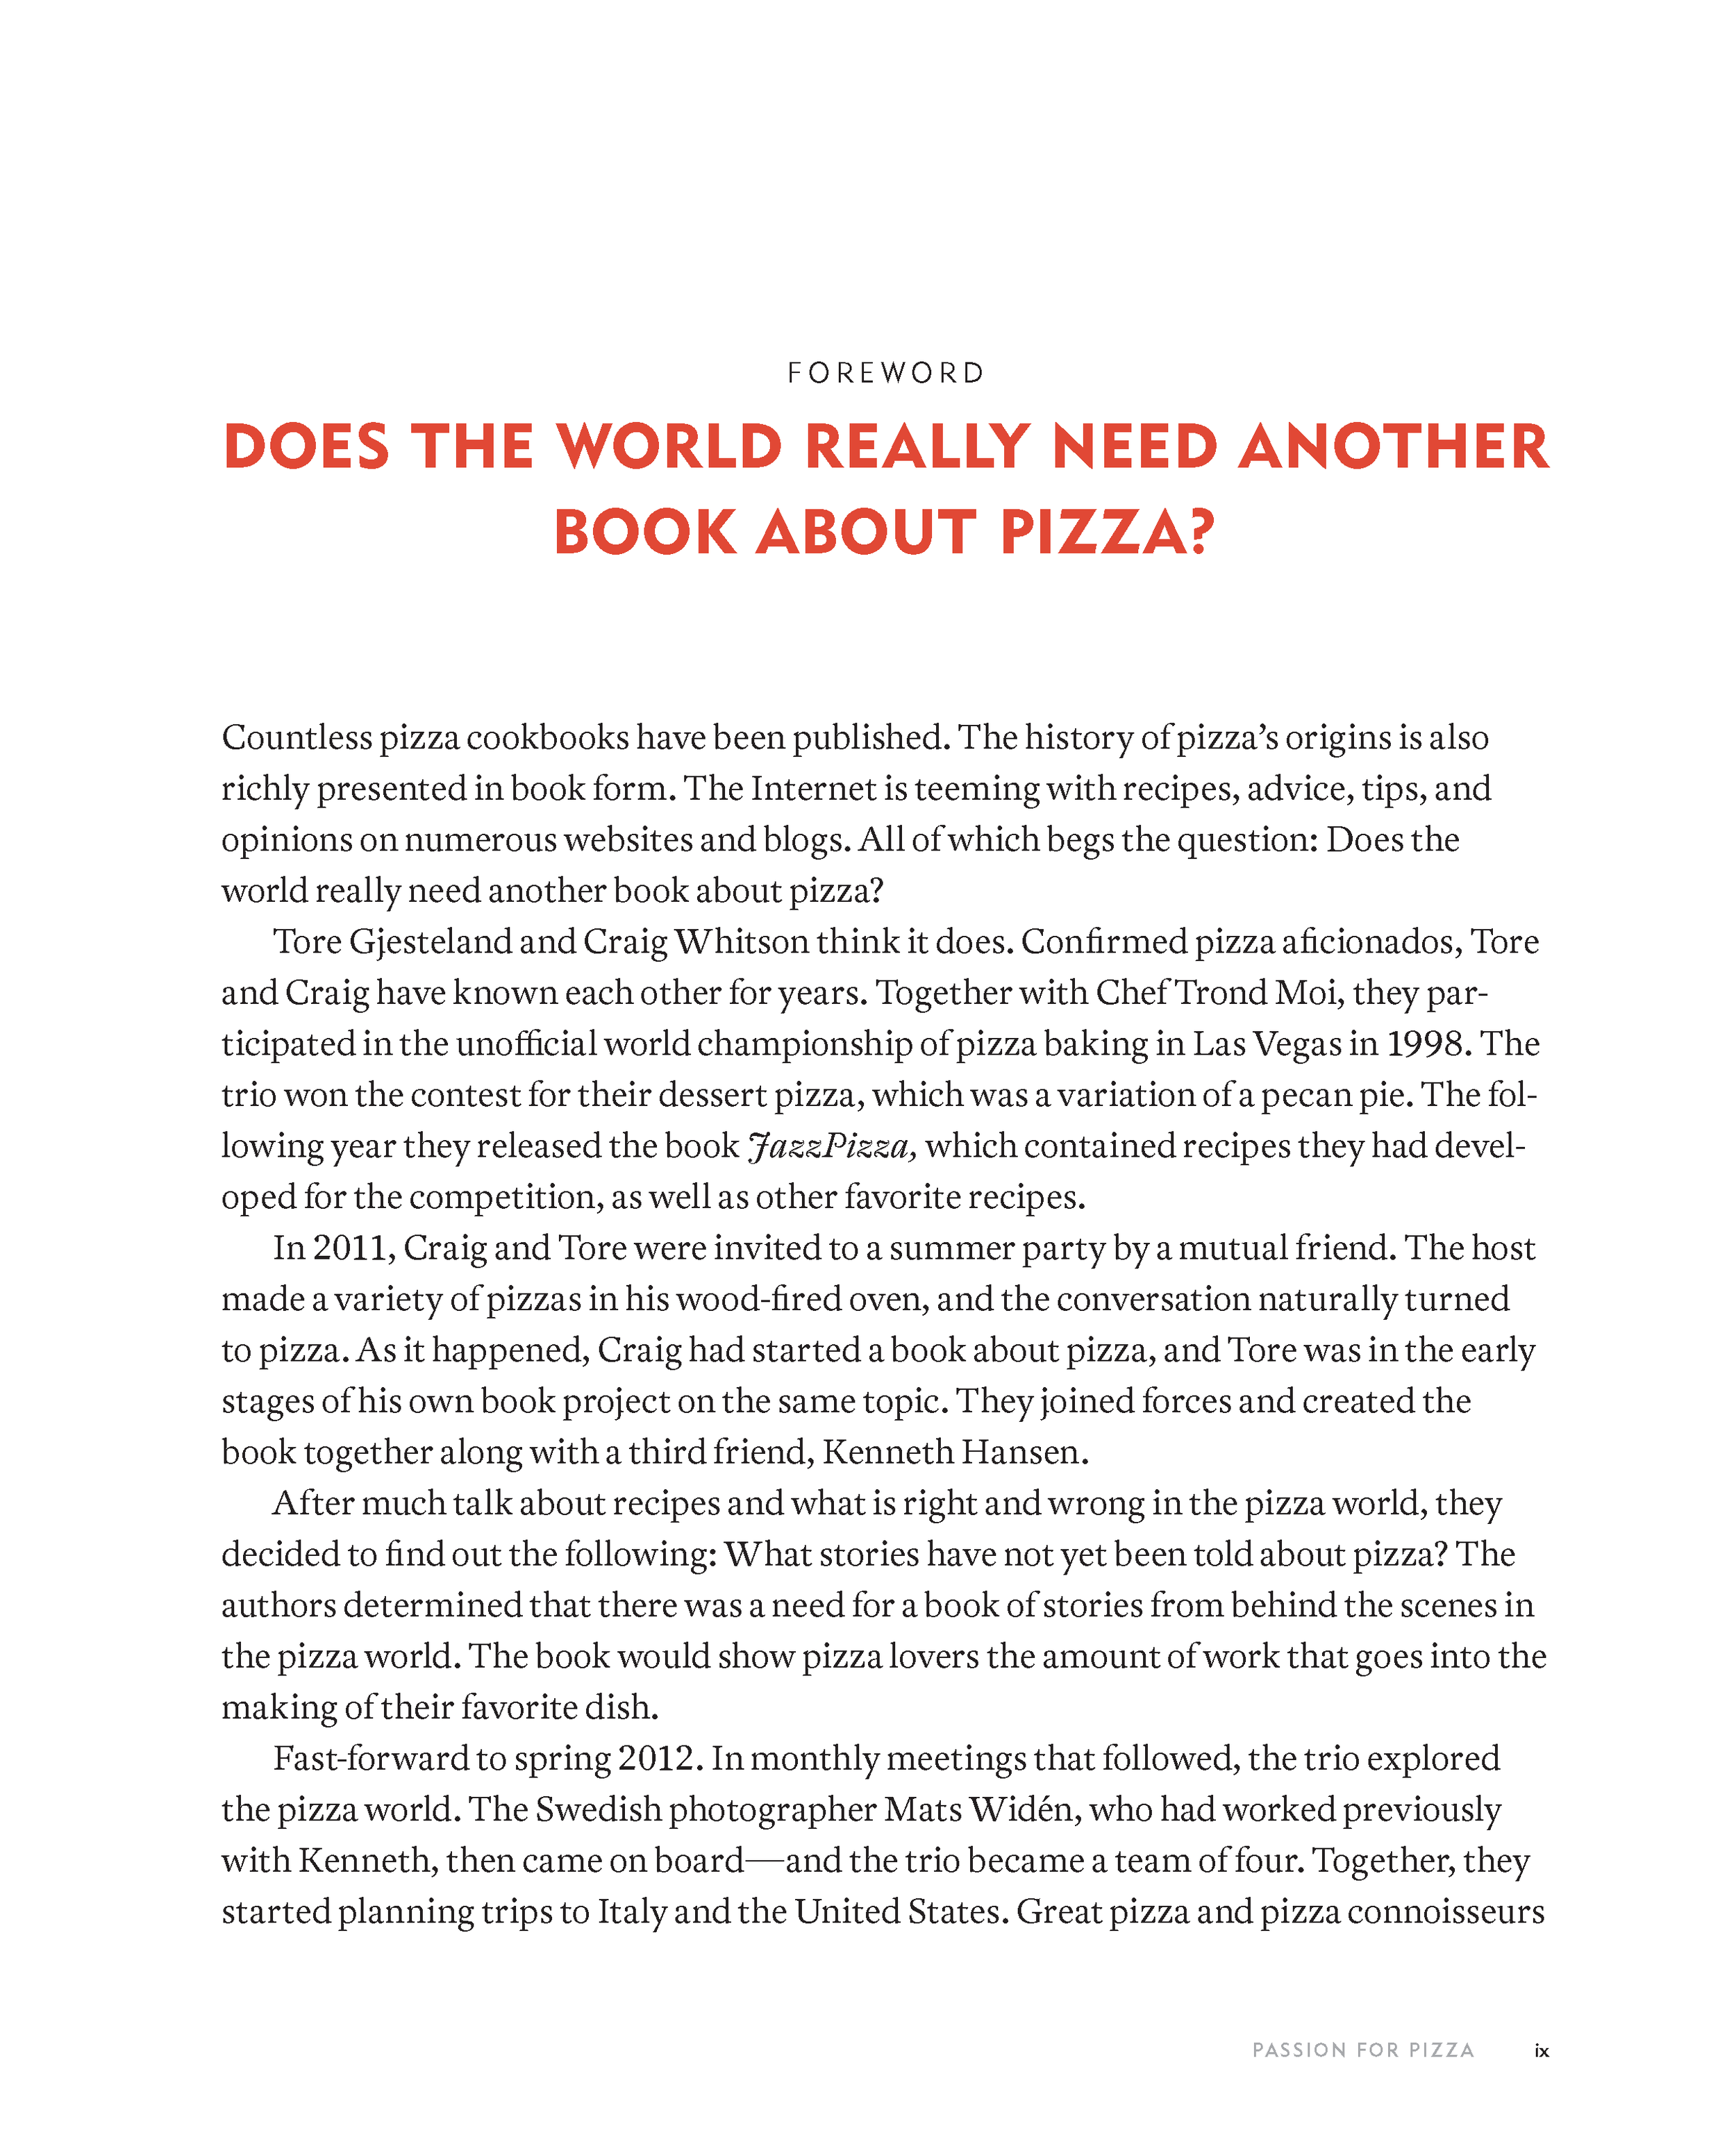 Passion for Pizza_Page_03.png